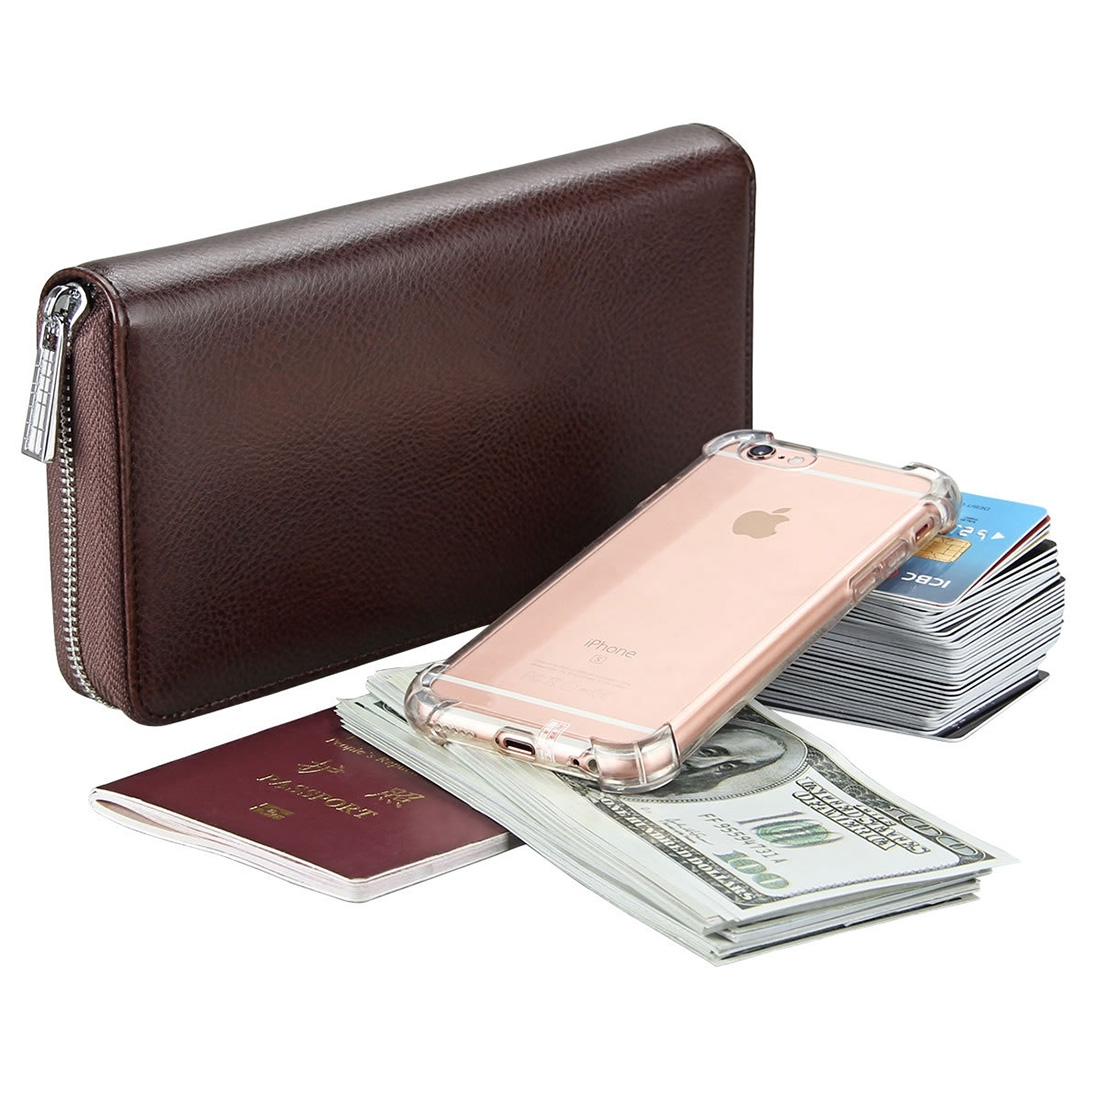 Antimagnetic RFID Large Capacity Long Style Genuine Leather Passport Package / Multifunctional and Many Card Slots Card Package (Coffee)